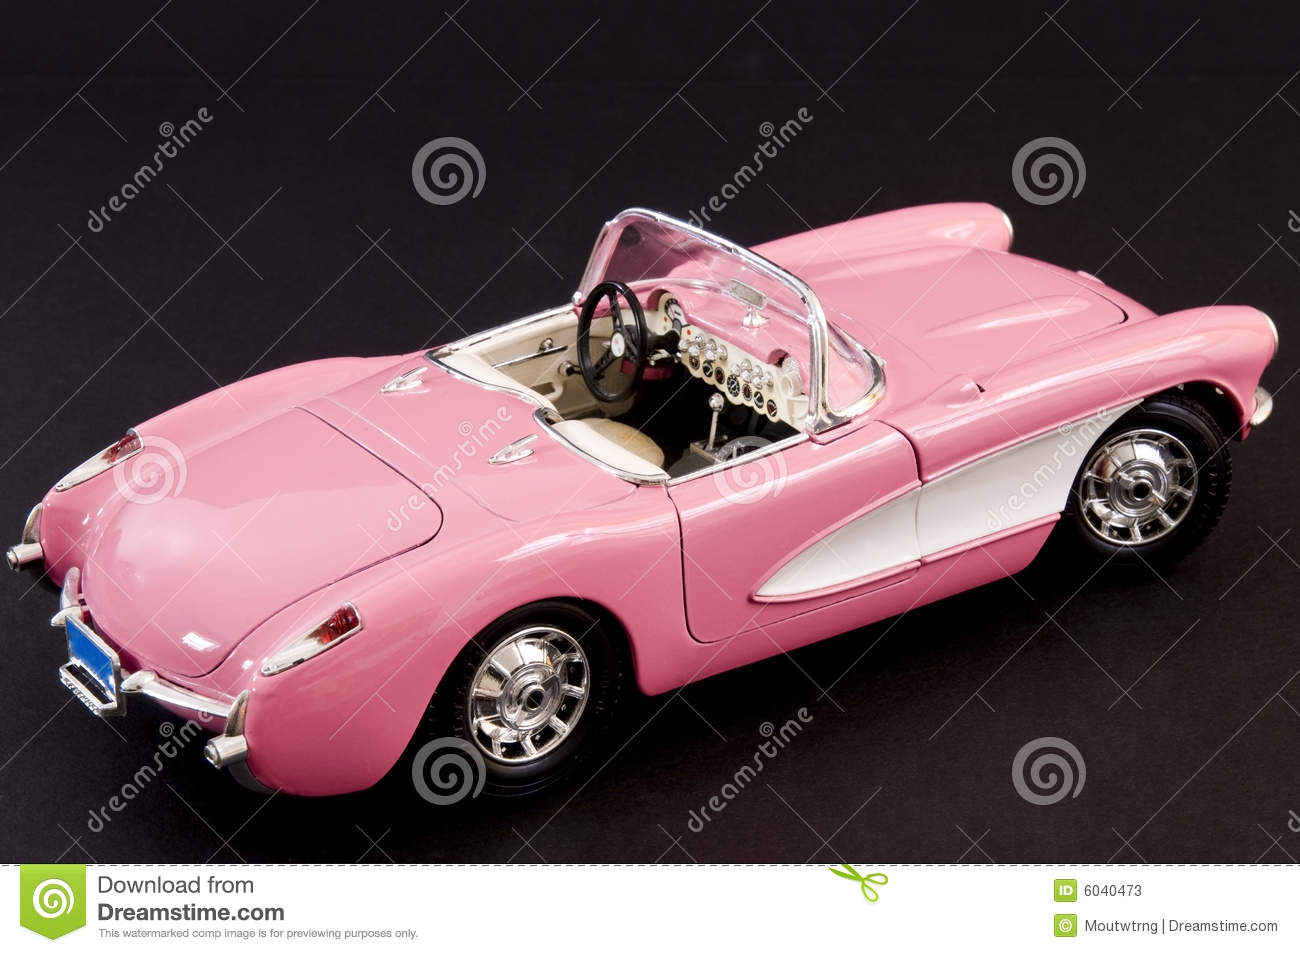 Old Chevy Cars >> Pink Stylish Classic Sports Car Stock Image - Image: 6040473